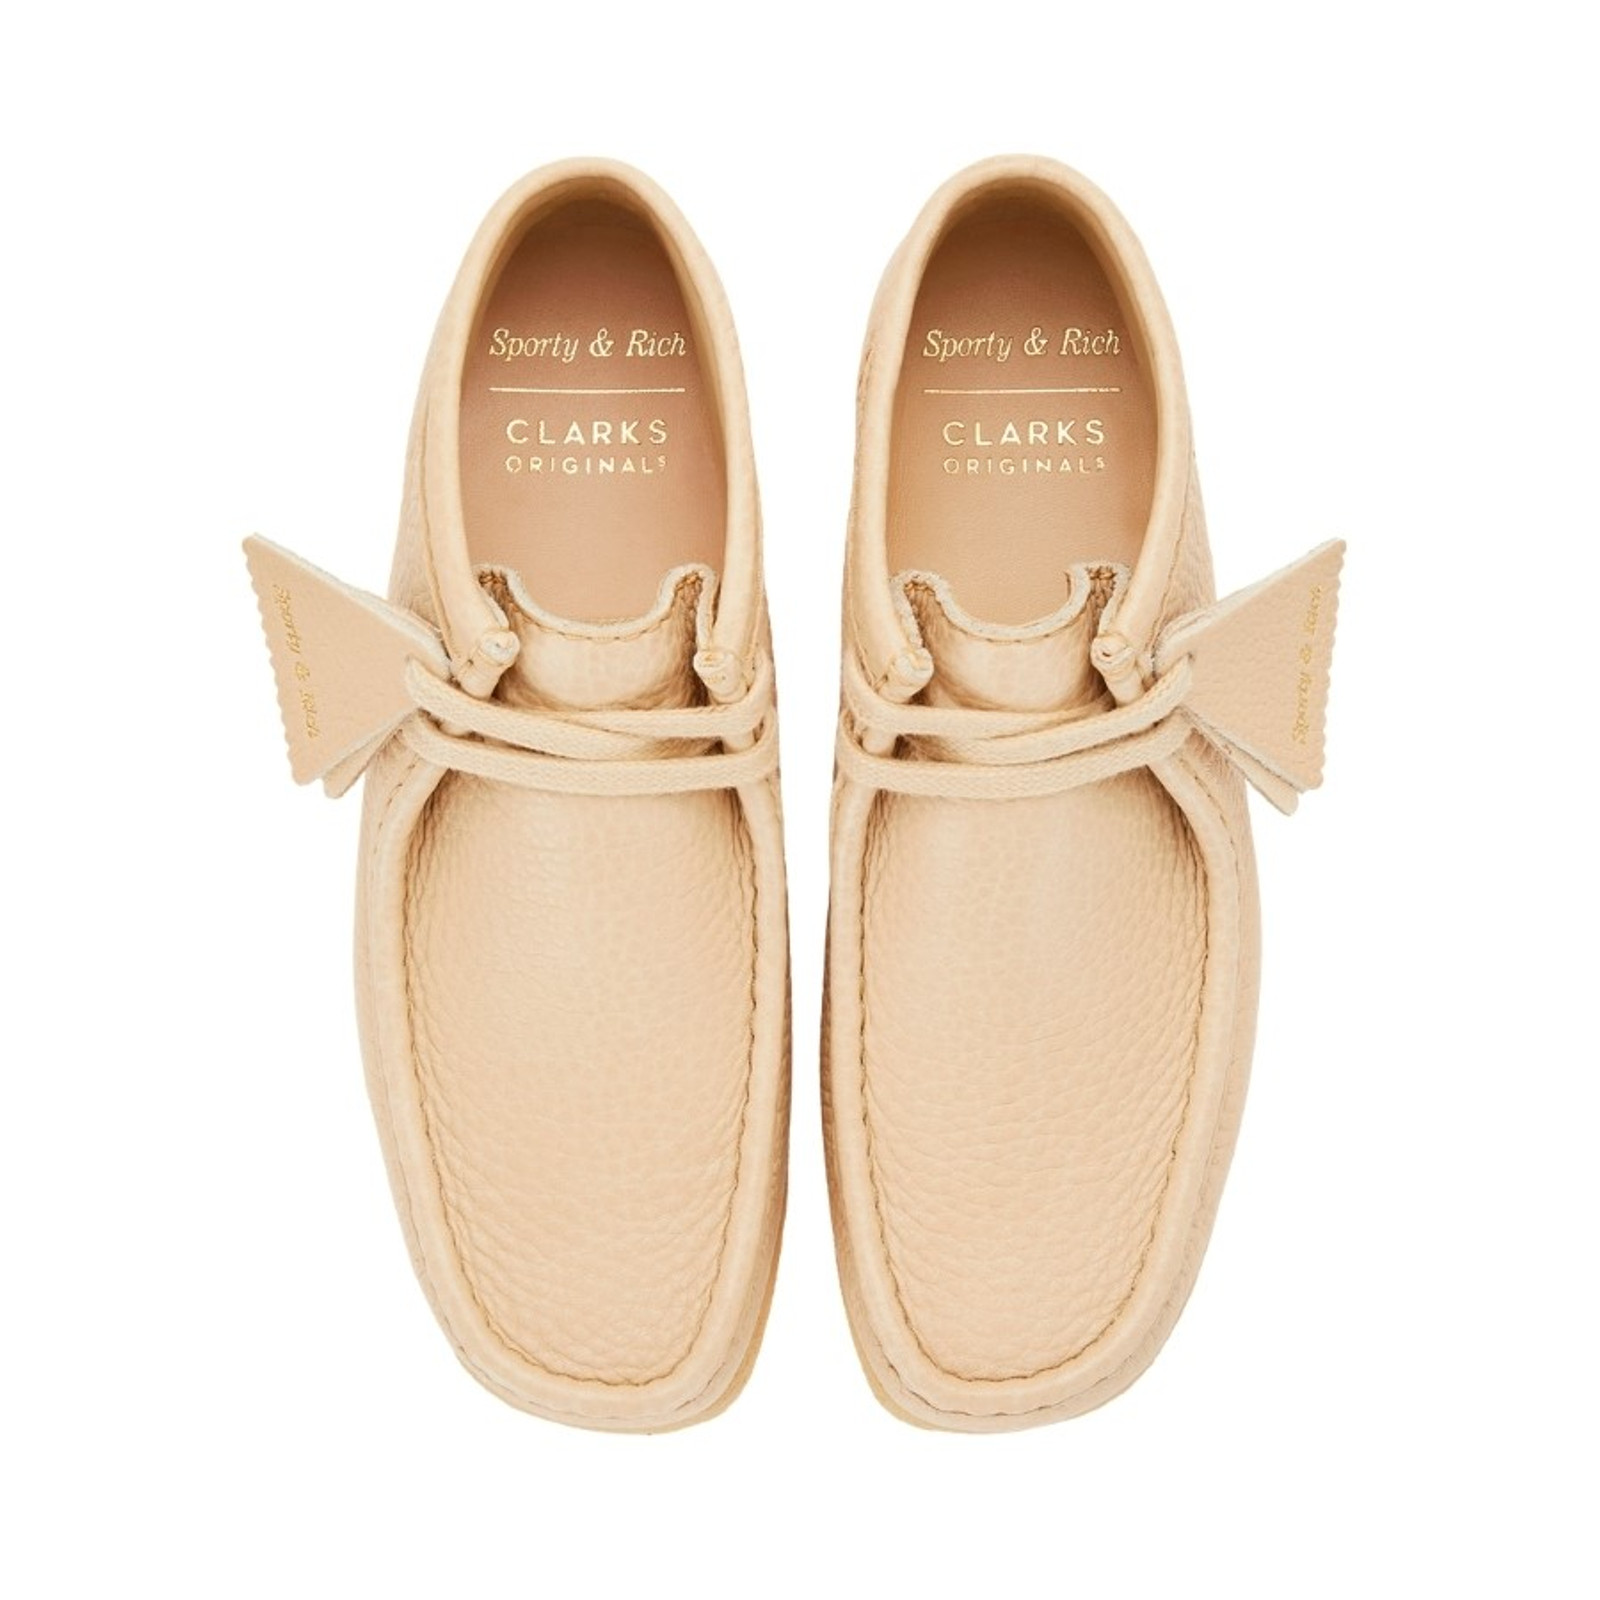 Clarks Womens WALLABEE X SPORTY & RICH Off White